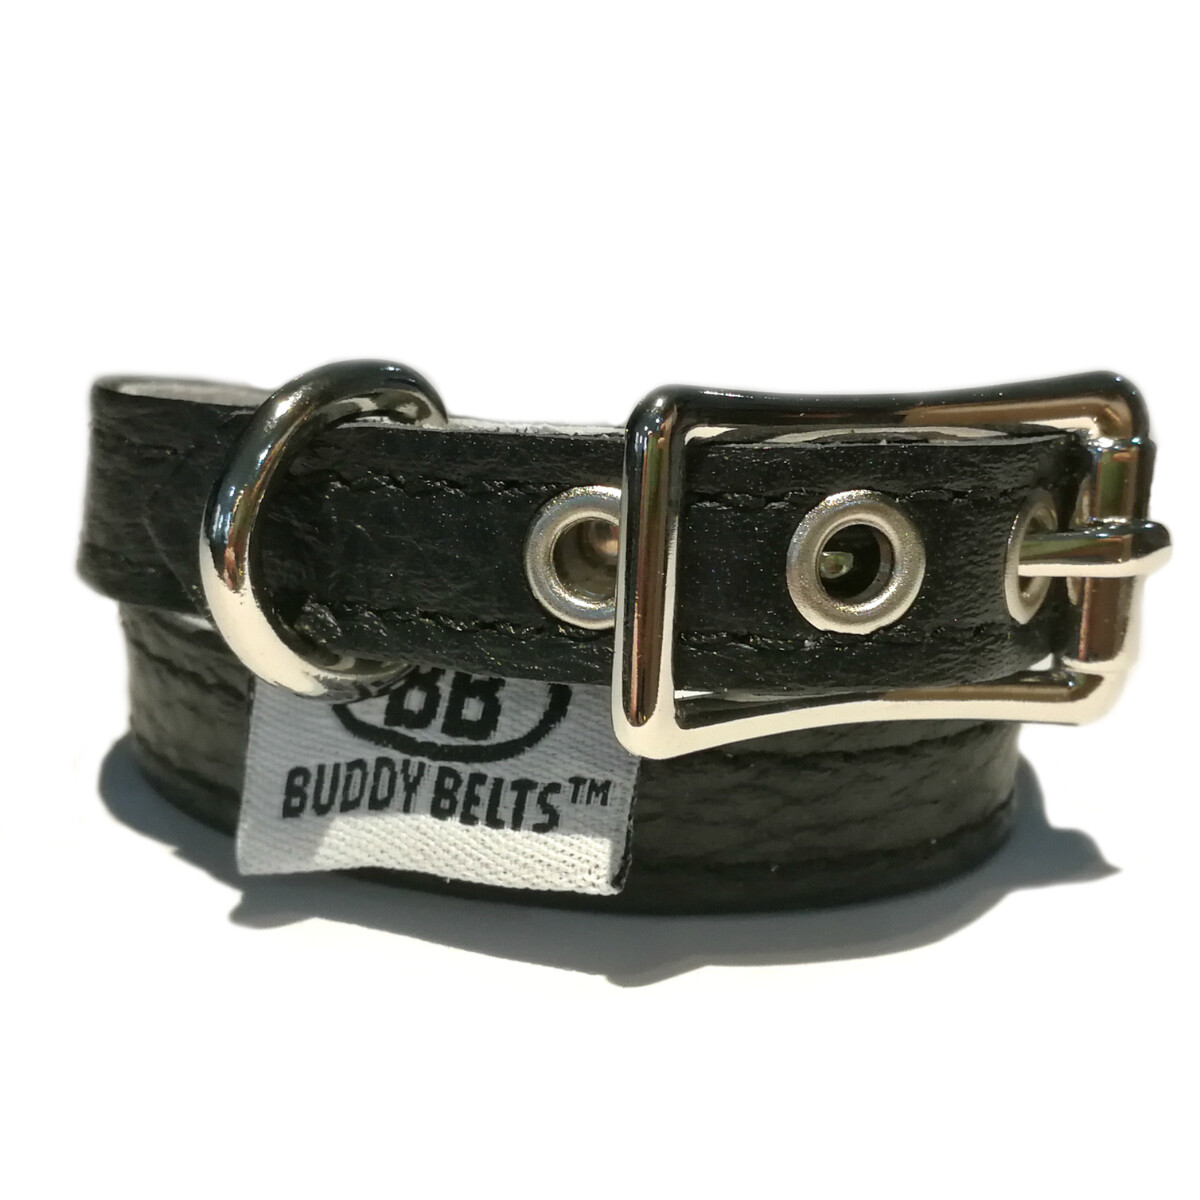 Buddy Belt Collar